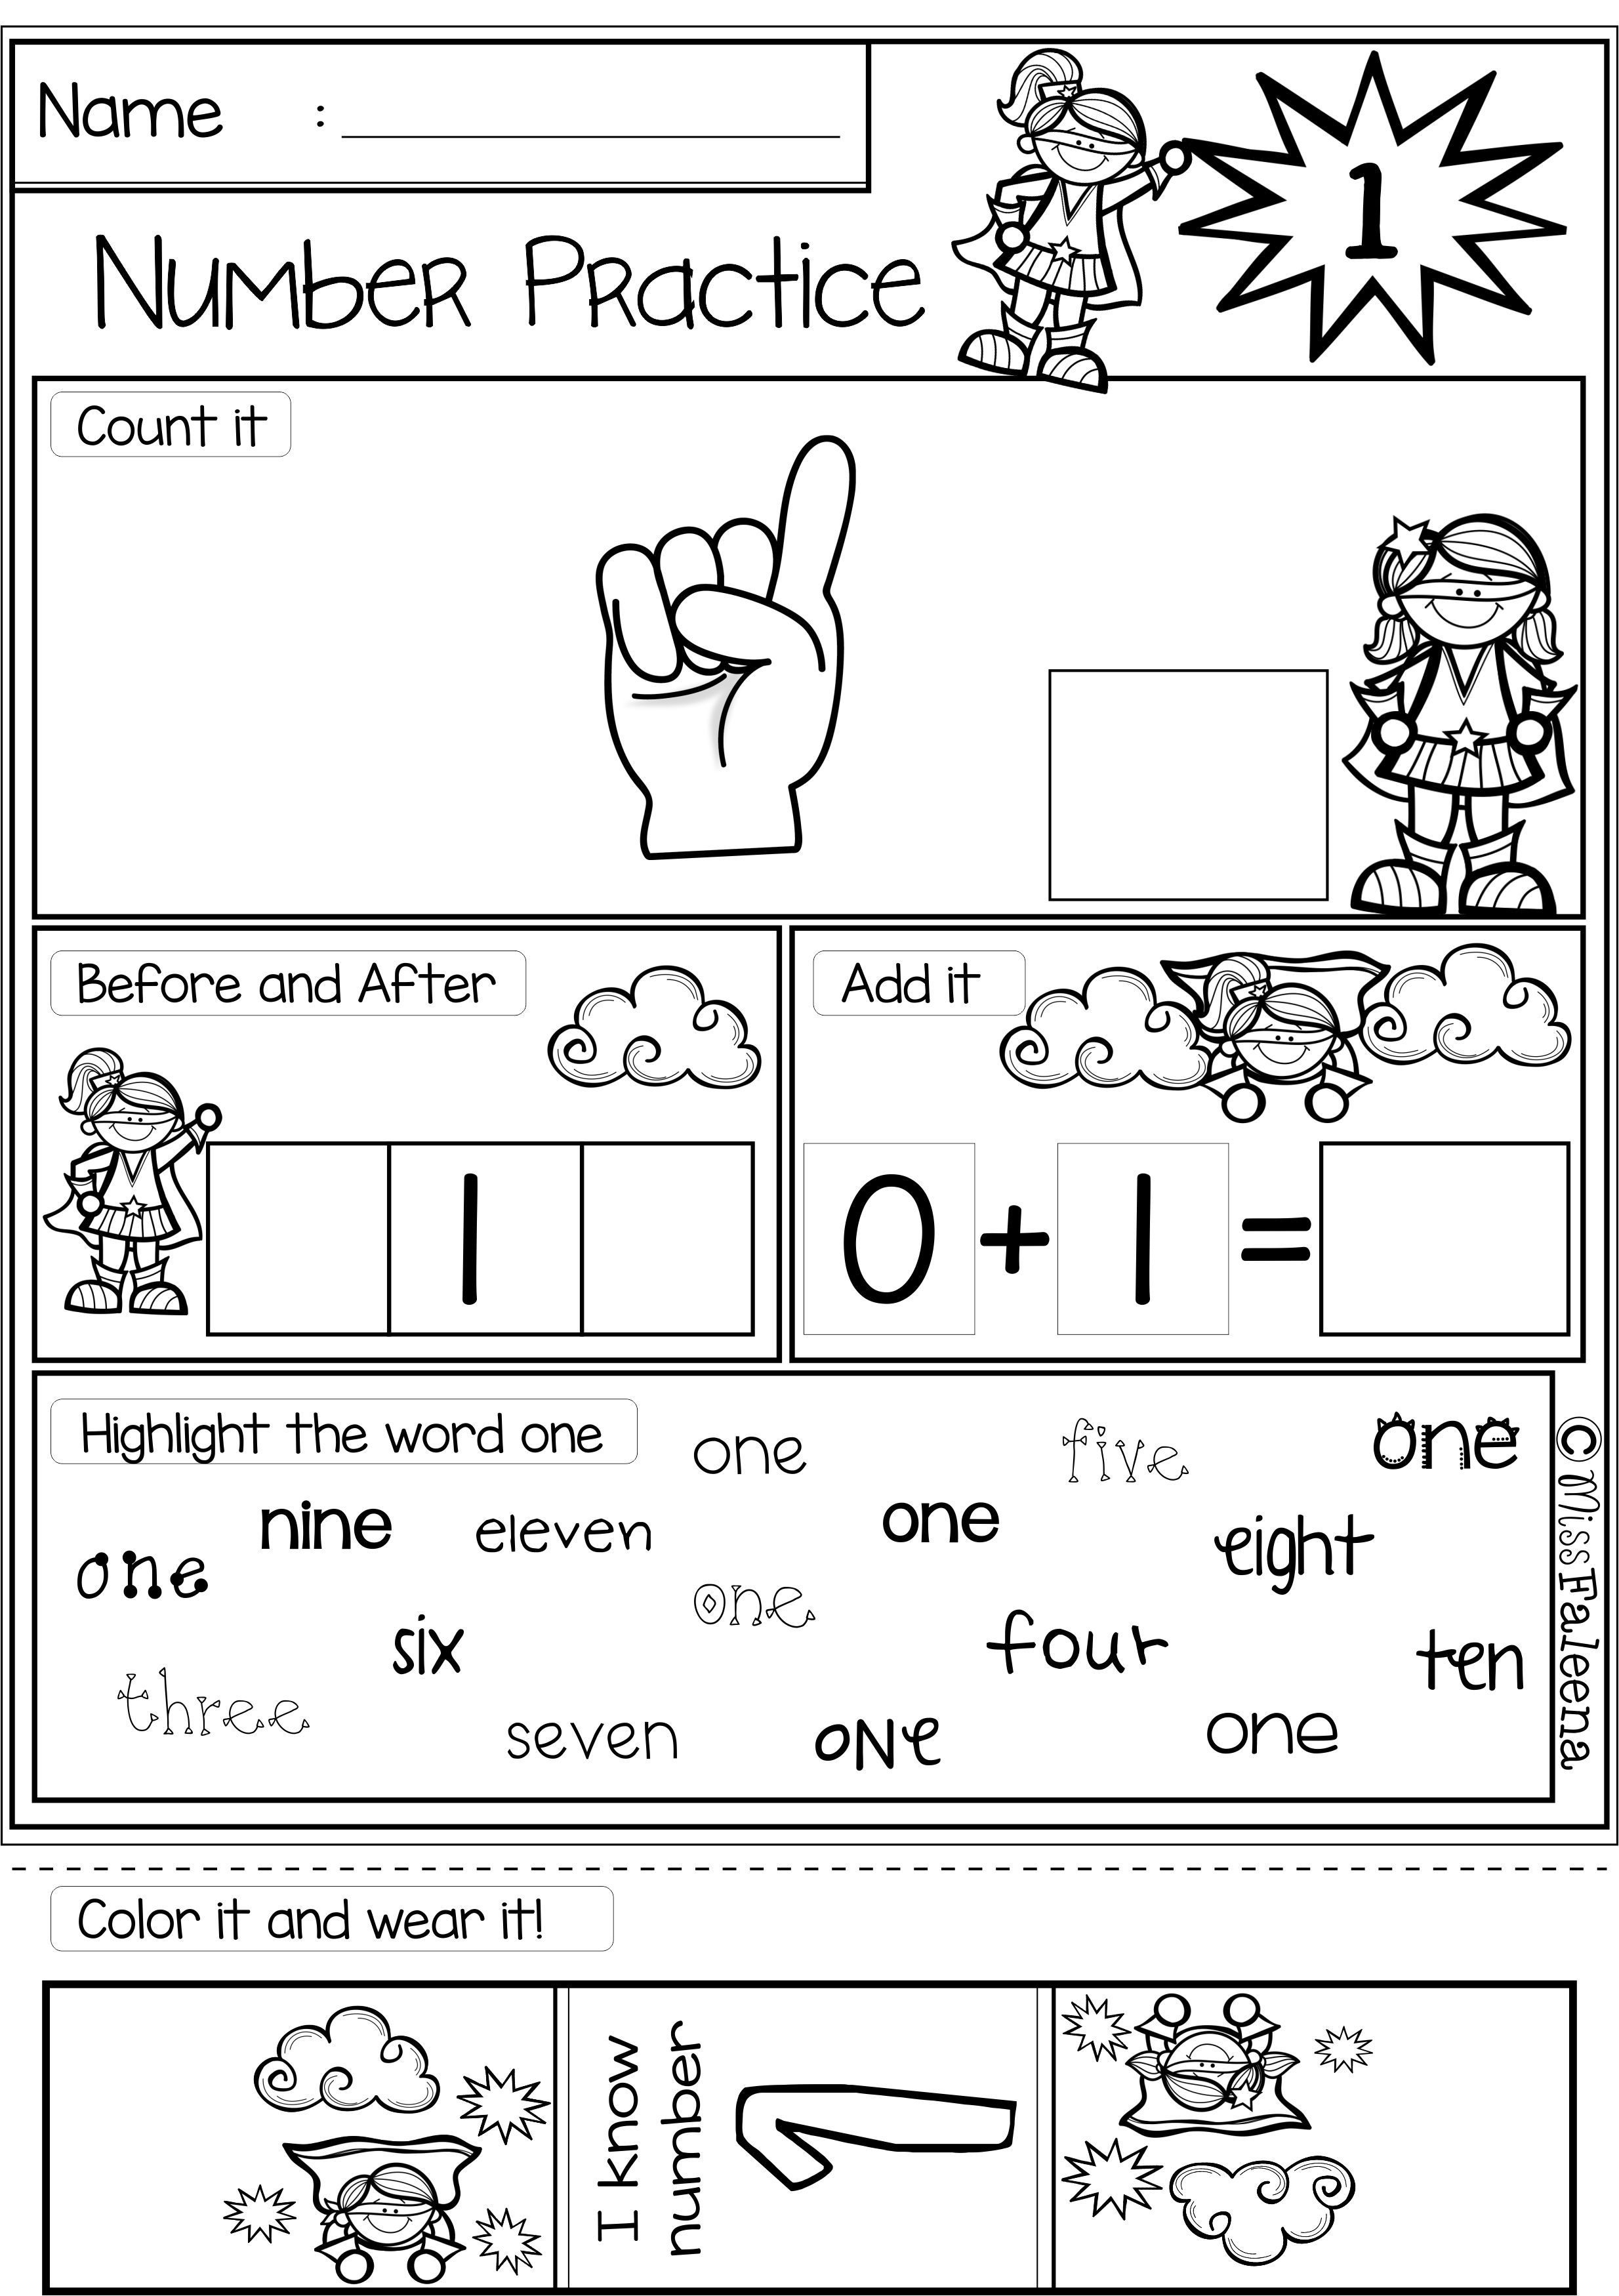 Number 1-20 Practice (Set 2) | Number words, Worksheets and ...